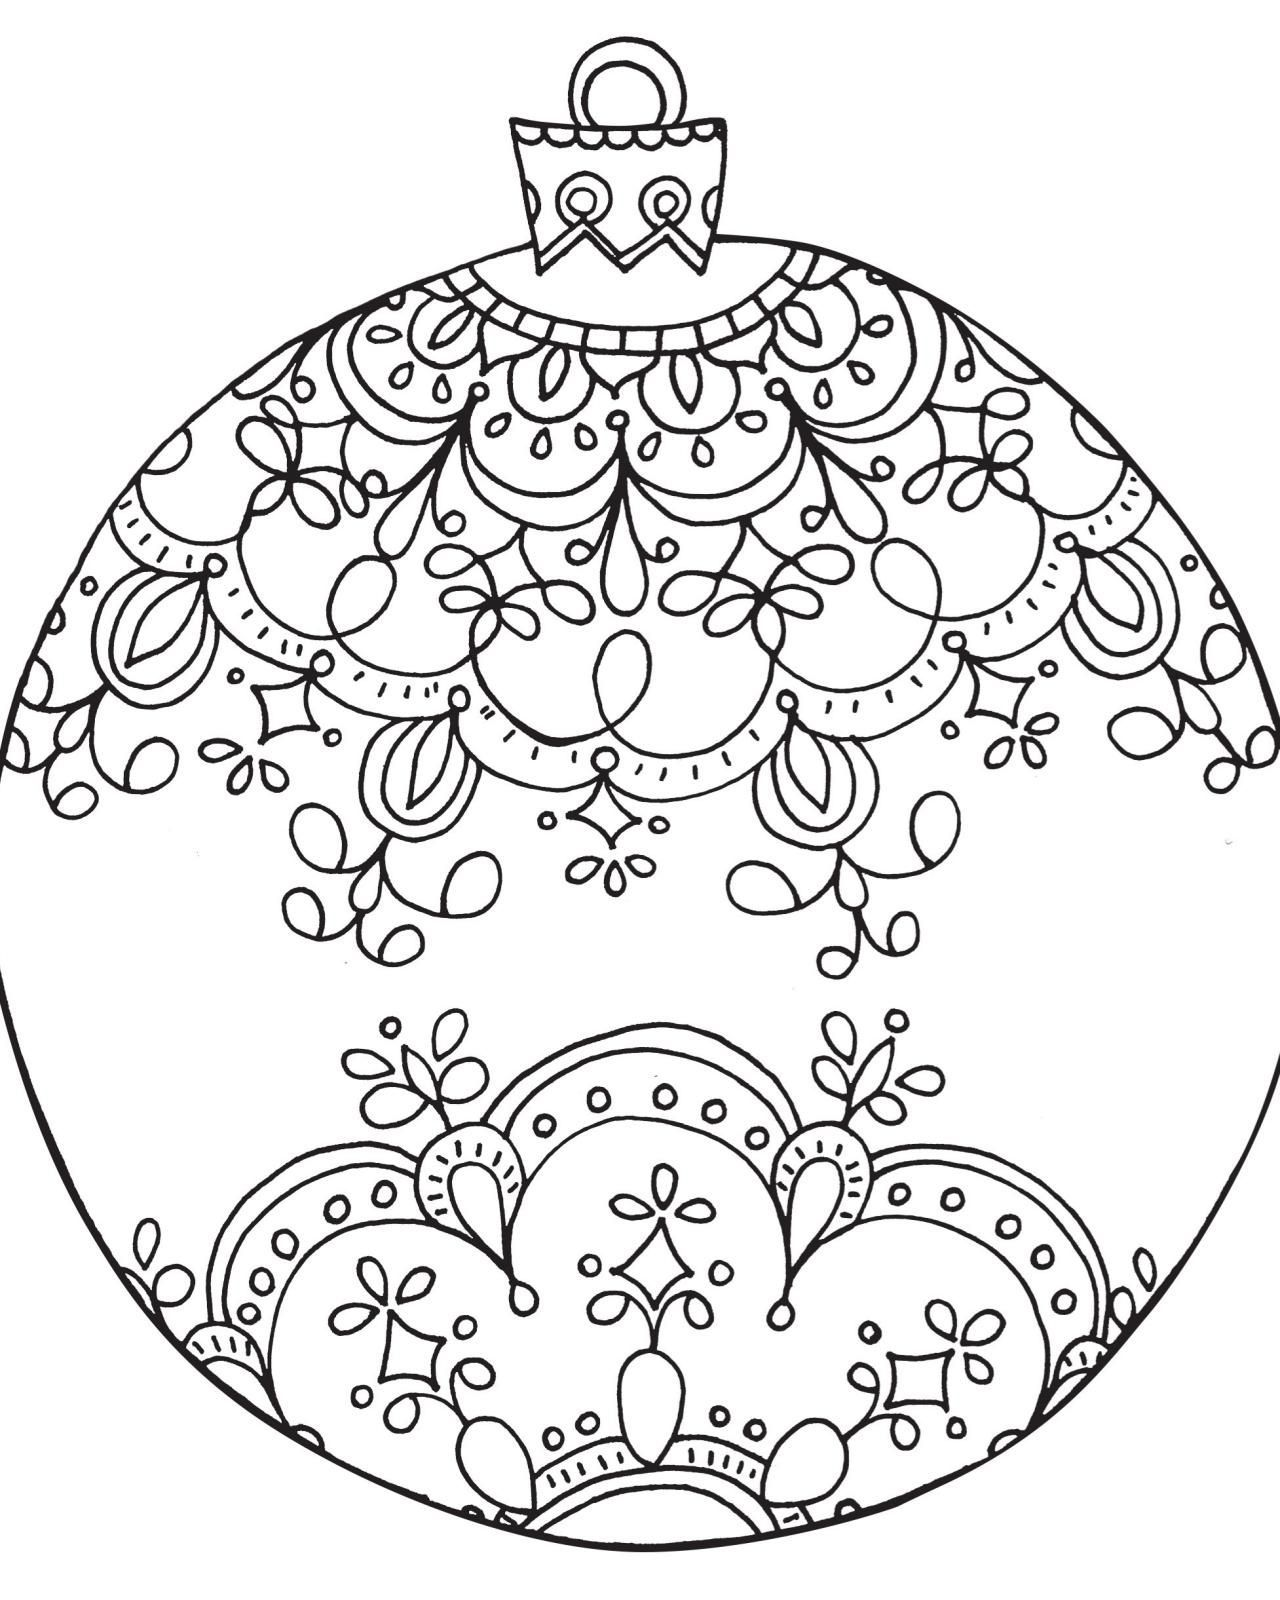 Mandala Coloring Pages Only Coloring Pages Printable Christmas Coloring Pages Christmas Coloring Books Free Christmas Coloring Pages